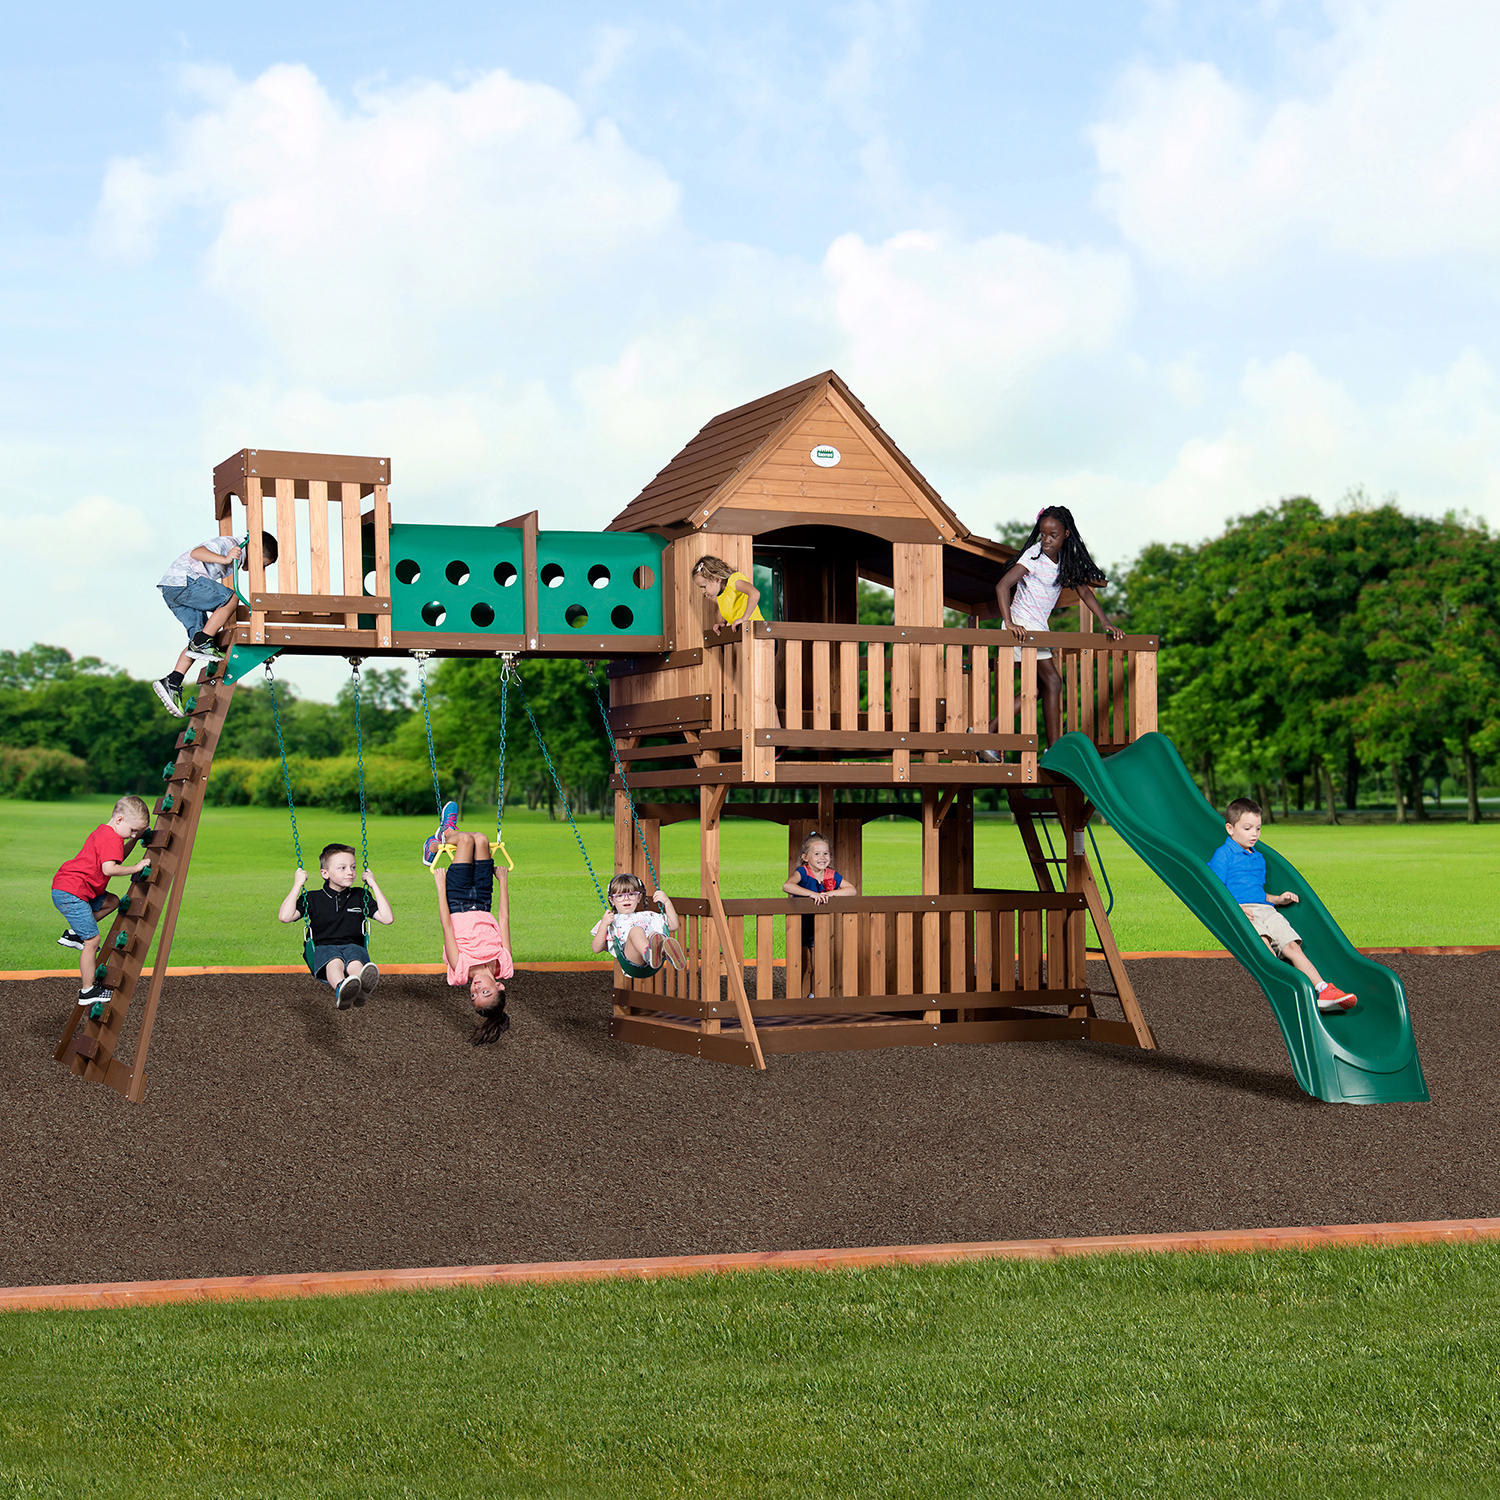 a cedar wood swing set with swings, a rock wall, a tunnel, a slide, and a hide out